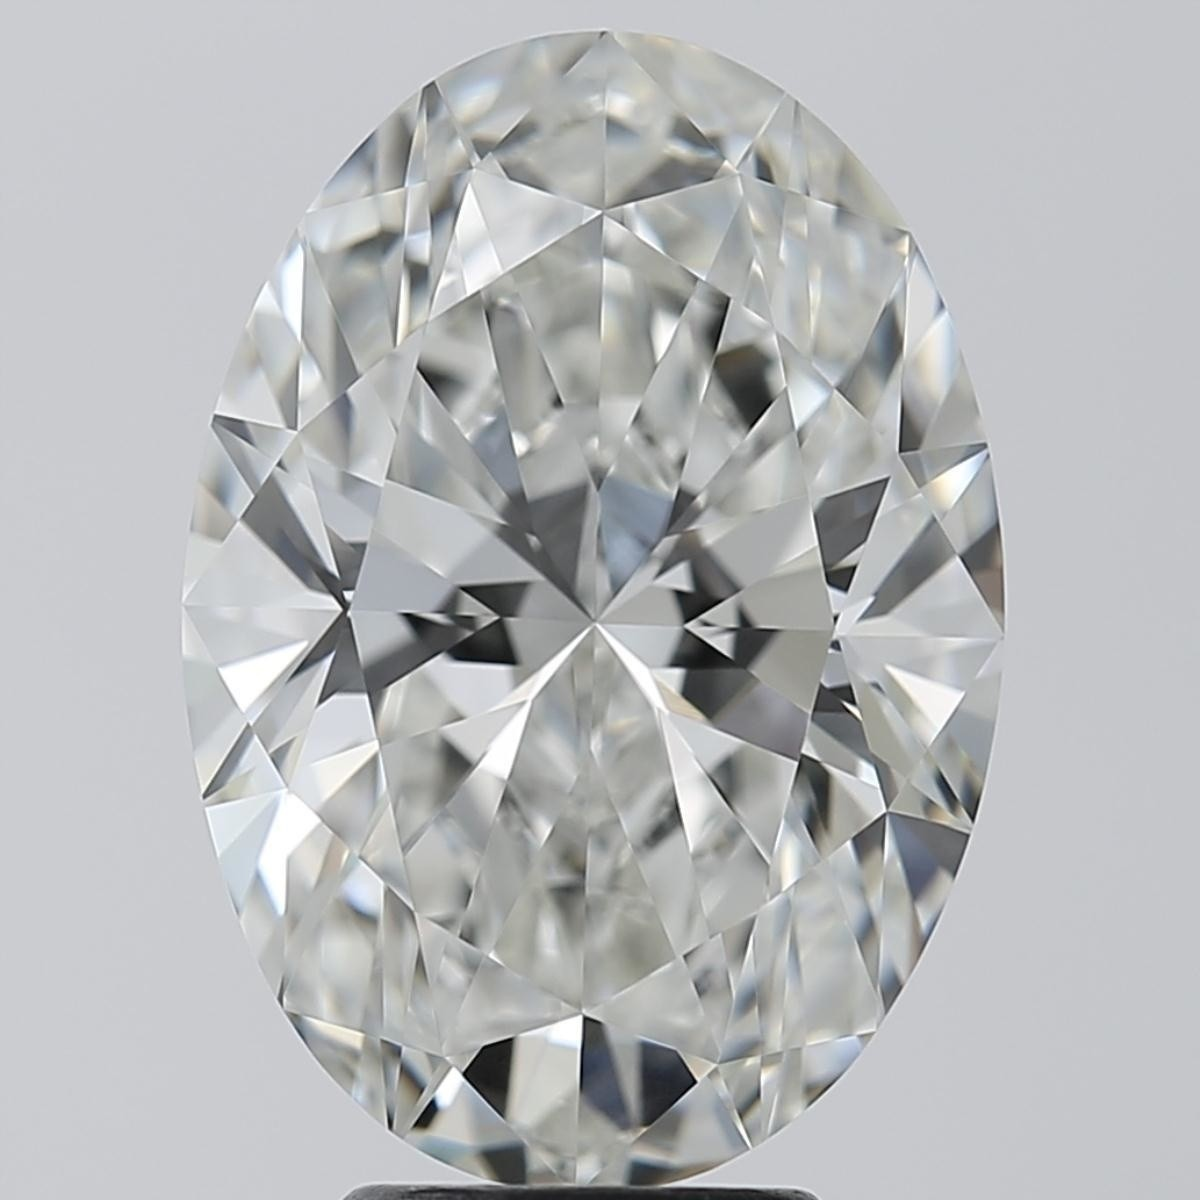 5.15 Carat Oval Diamond (H/VVS1)